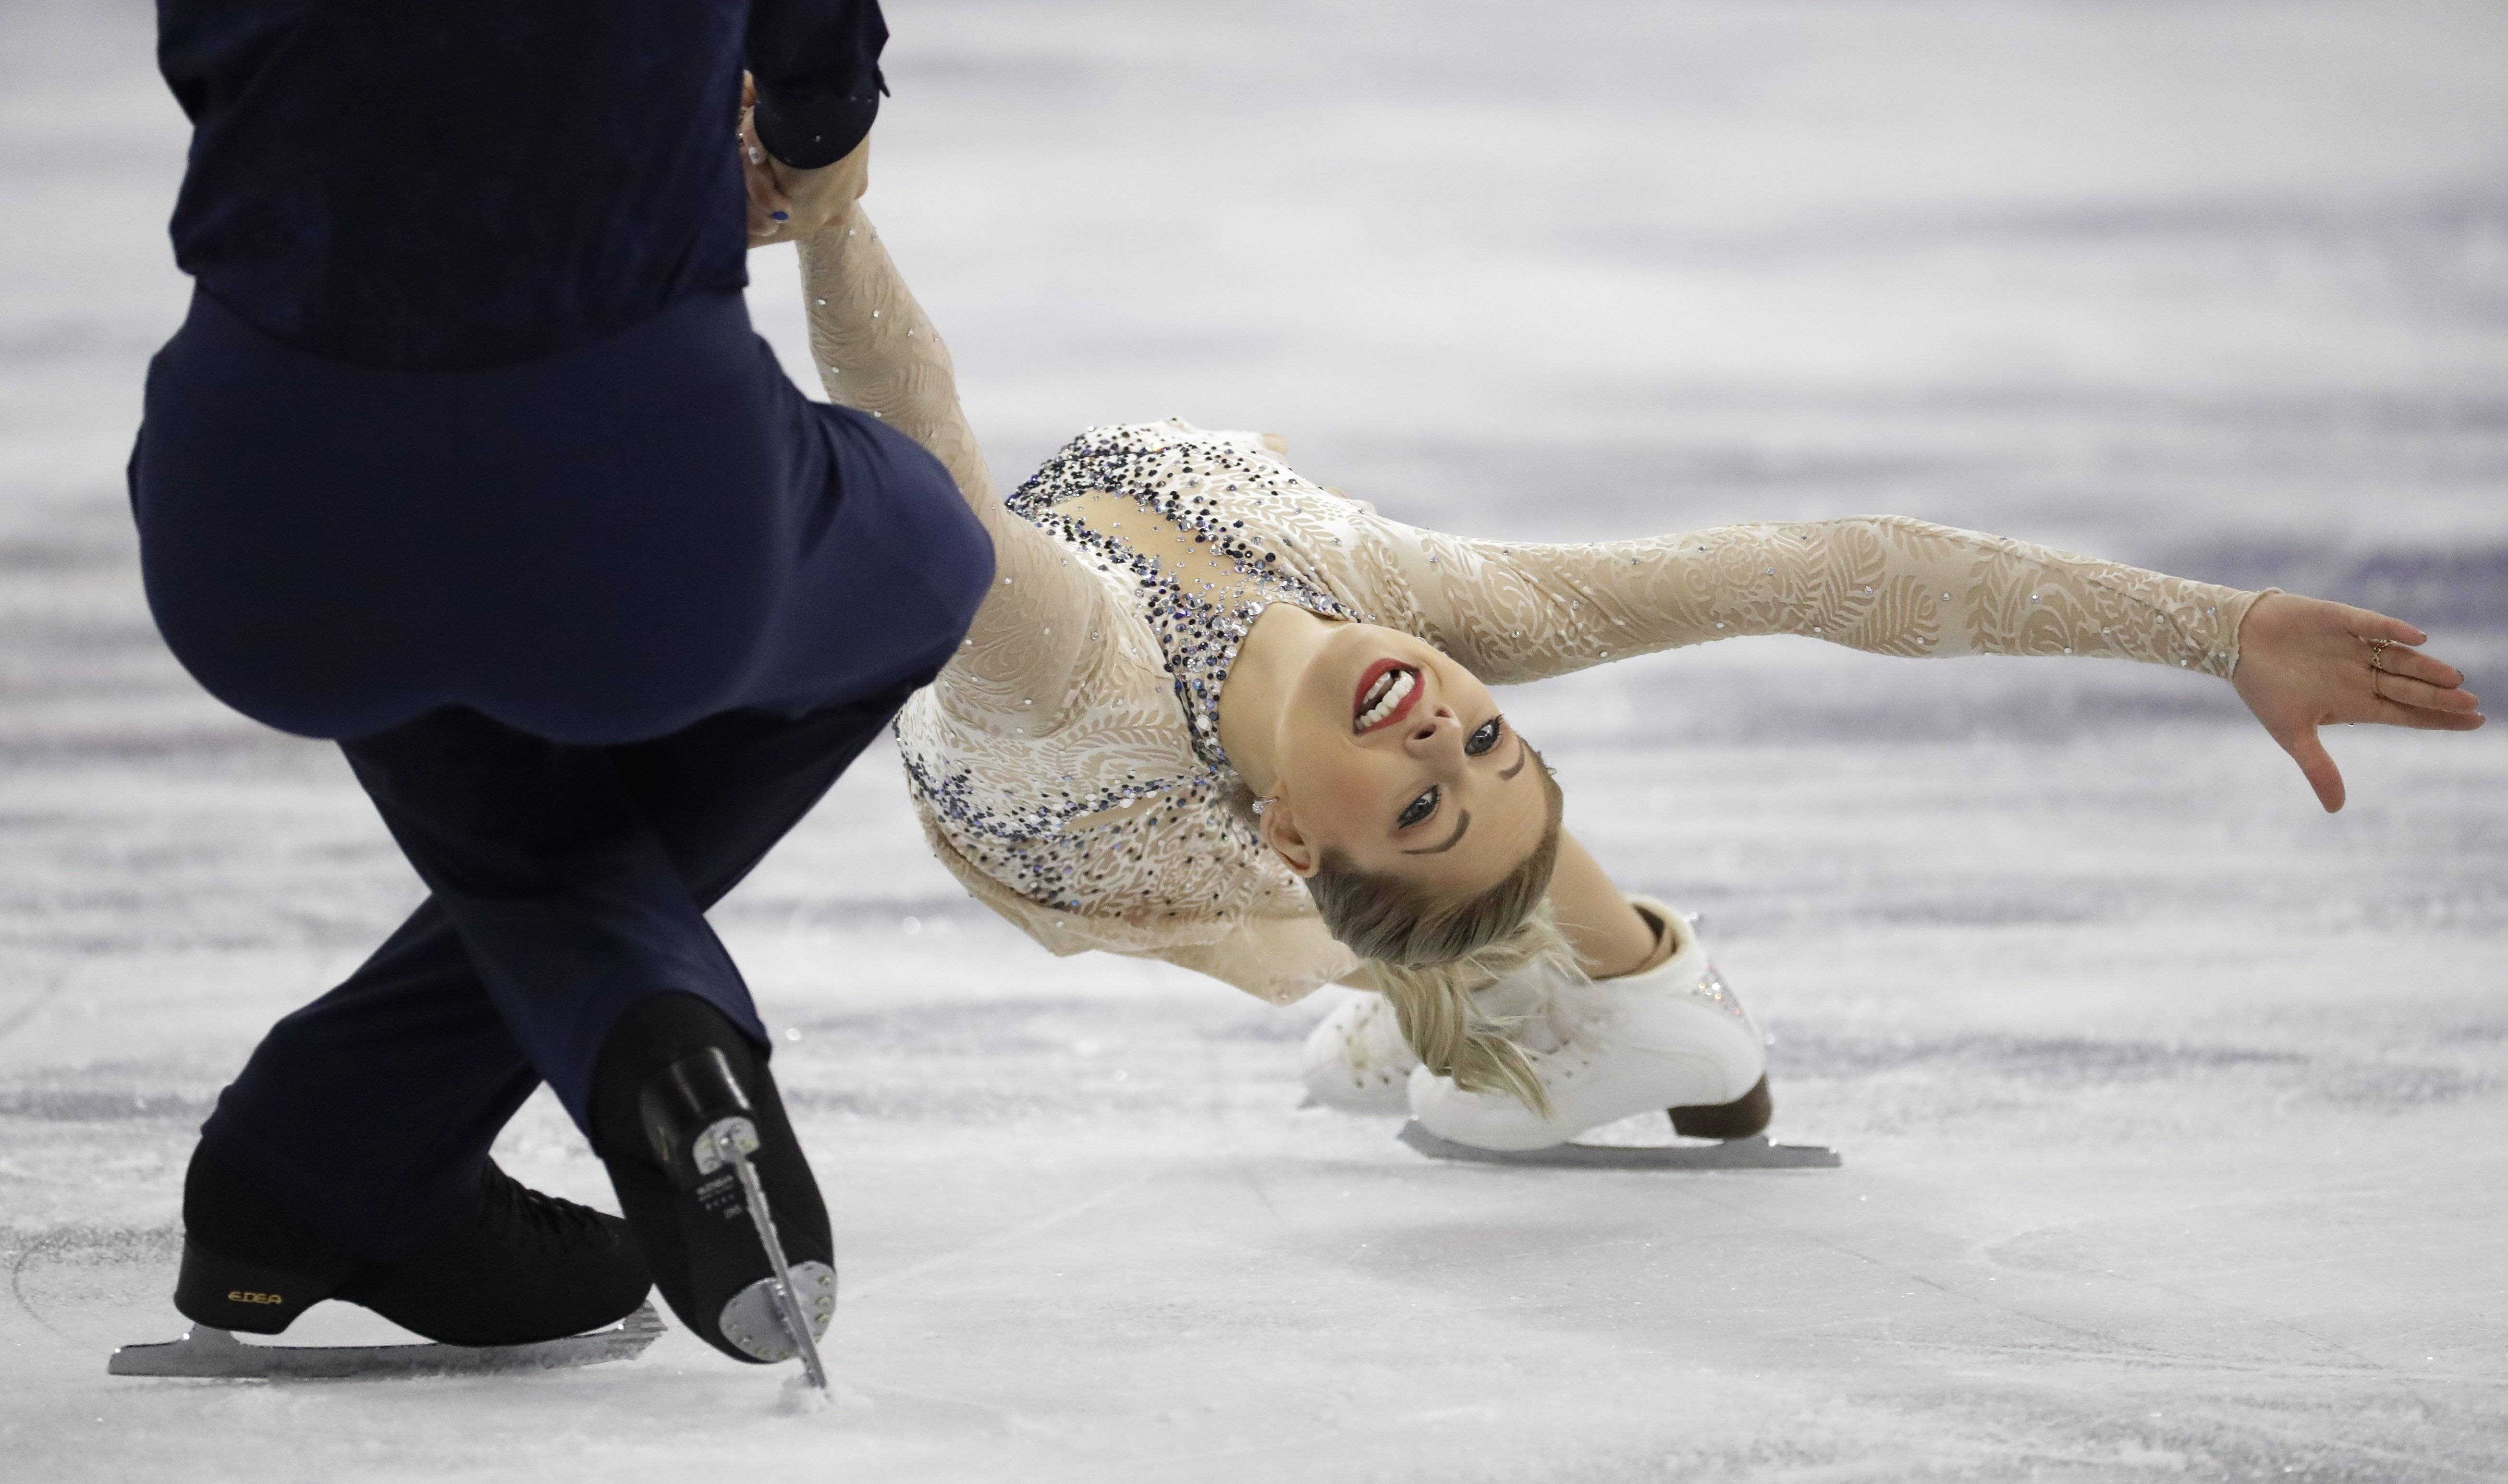 Think figure skating isn't a sport? Tell that to Addison native Alexa Scimeca Knierim and Chris Knierim.